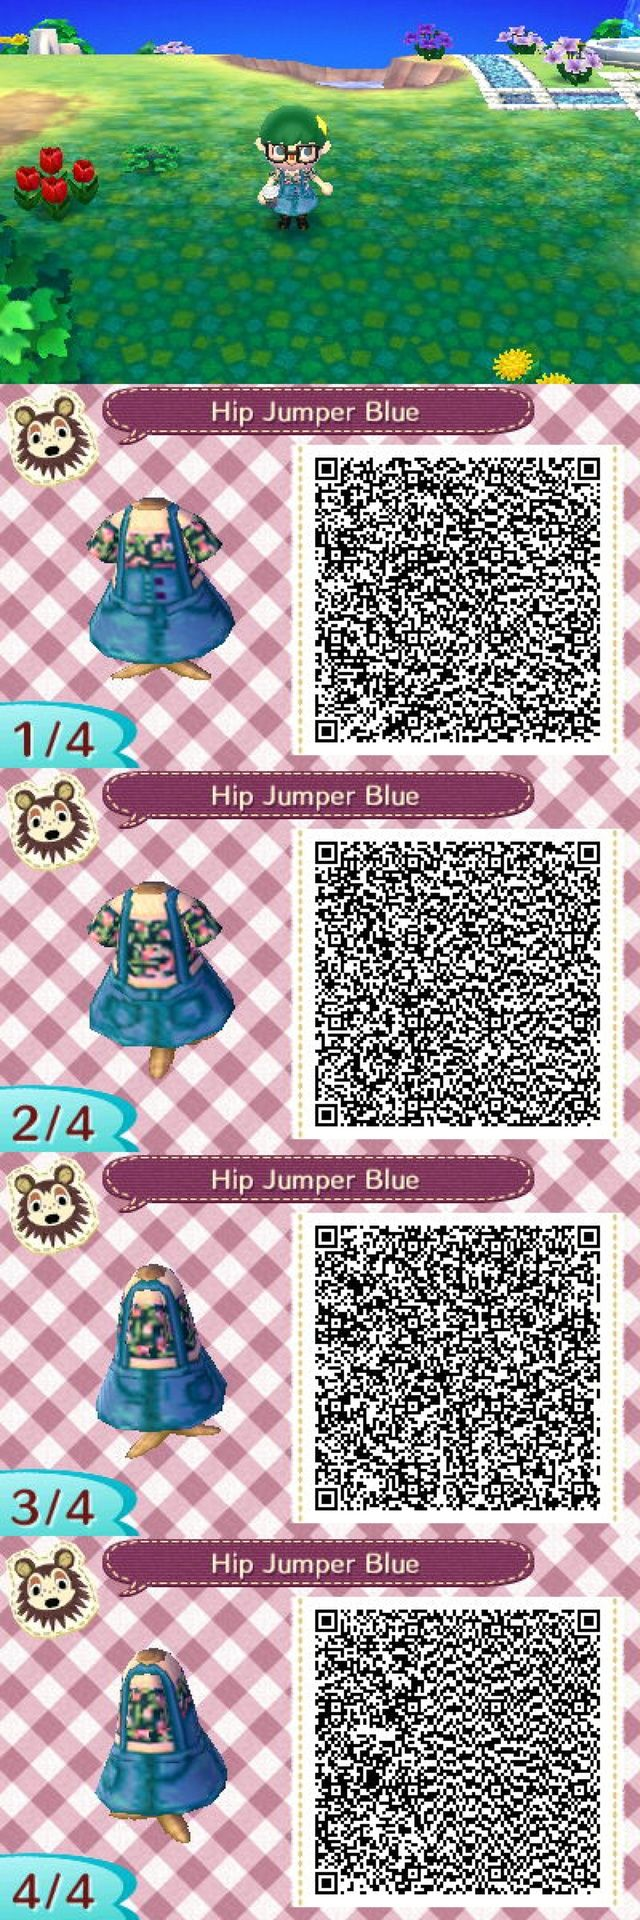 super cool for spring/summer acnl summer dresses qr codes